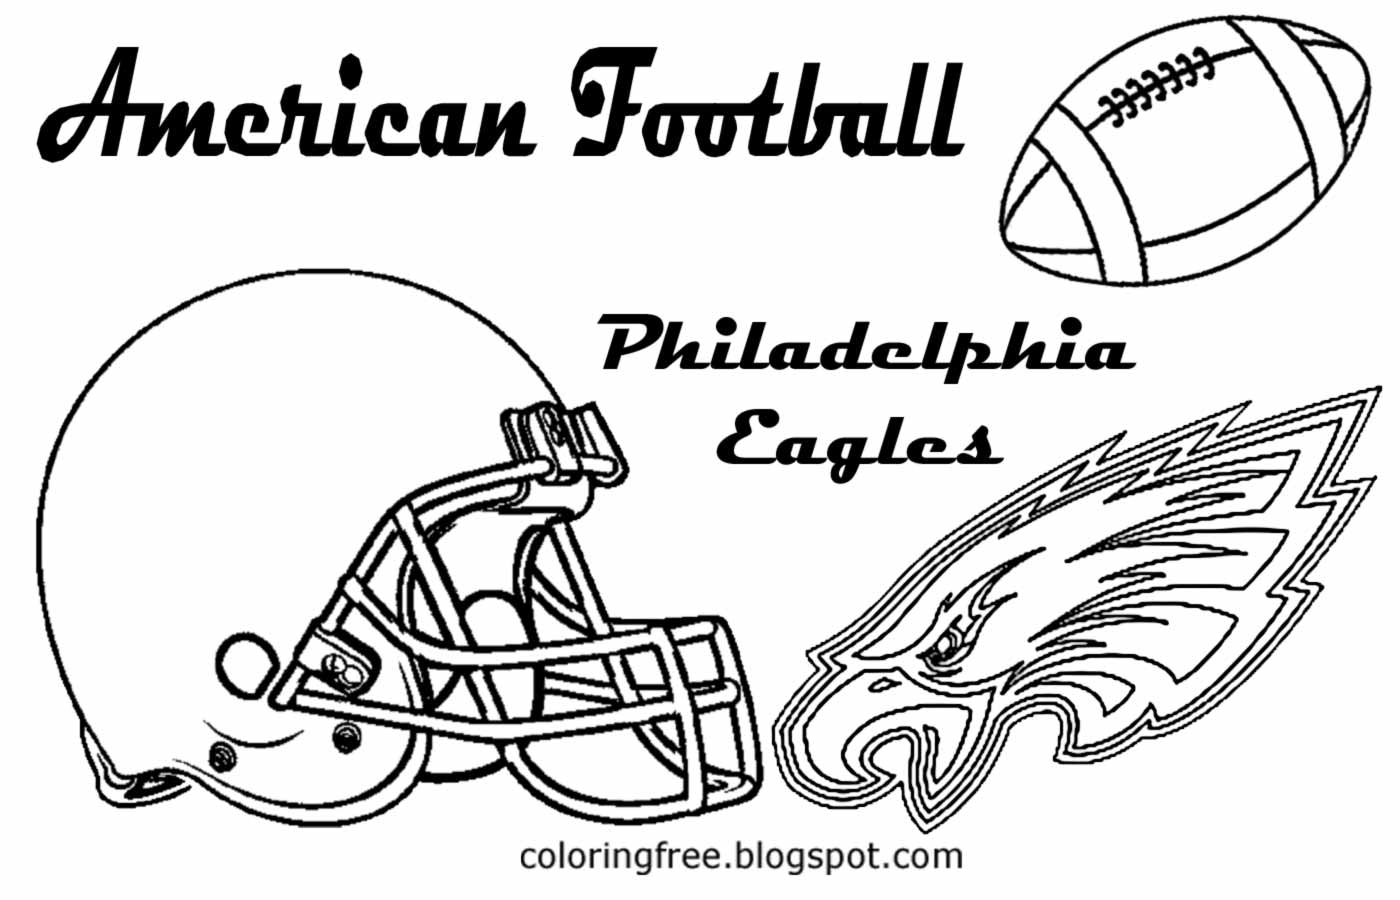 Philadelphia Eagles Football Coloring Pages